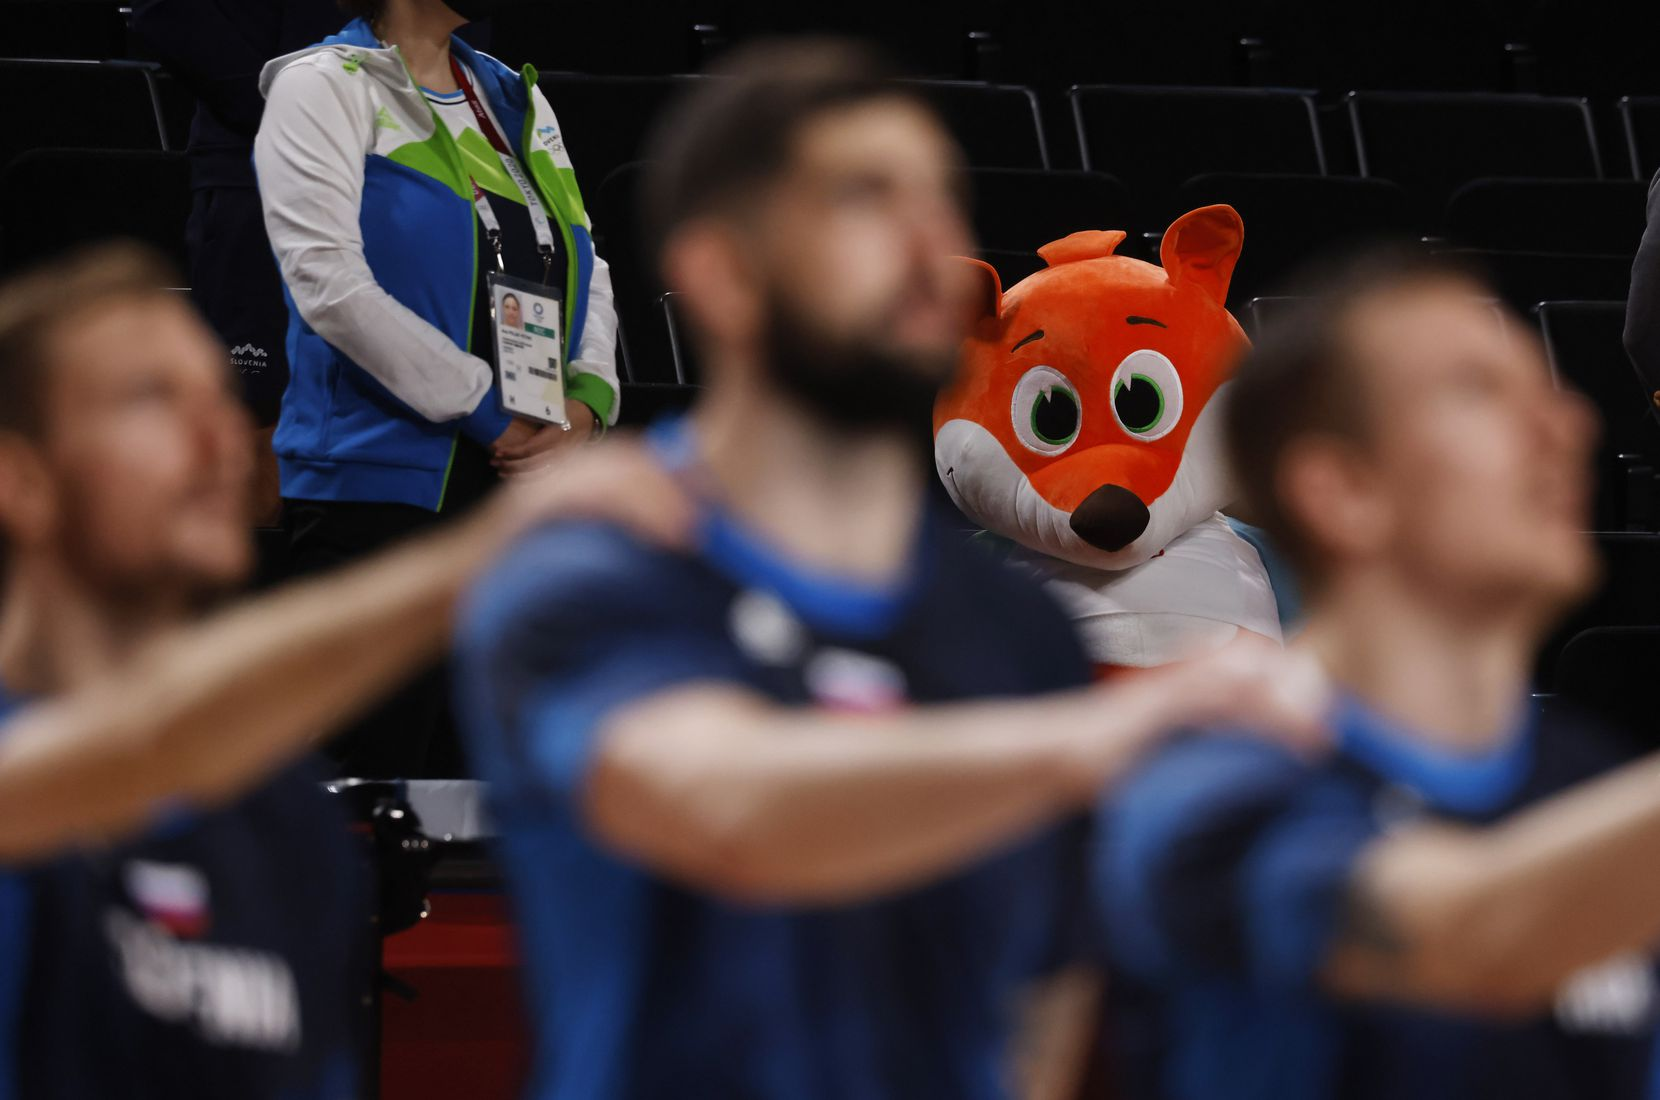 A stuffed animal sits at watch as the national anthem for Slovenia plays before a game against Australia for the bronze medal basketball game at the postponed 2020 Tokyo Olympics at Saitama Super Arena, on Saturday, August 7, 2021, in Saitama, Japan. (Vernon Bryant/The Dallas Morning News)